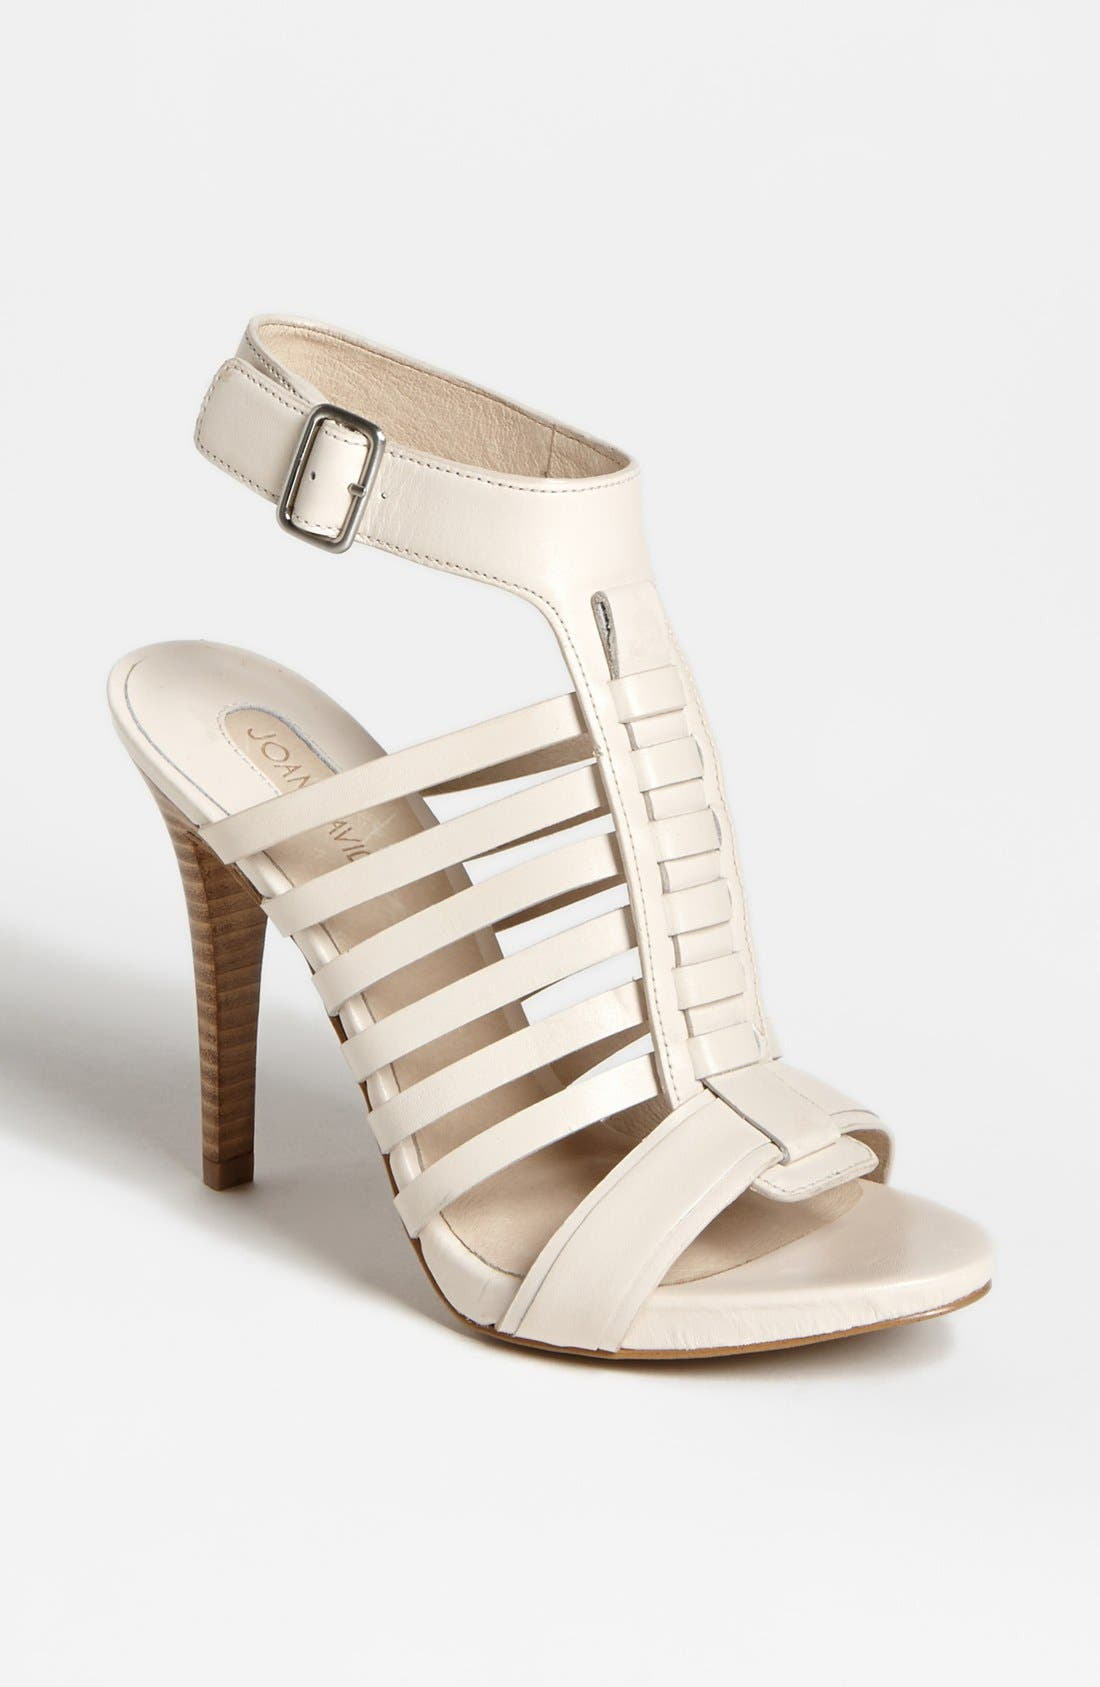 Alternate Image 1 Selected - Joan & David 'Serenia' Sandal